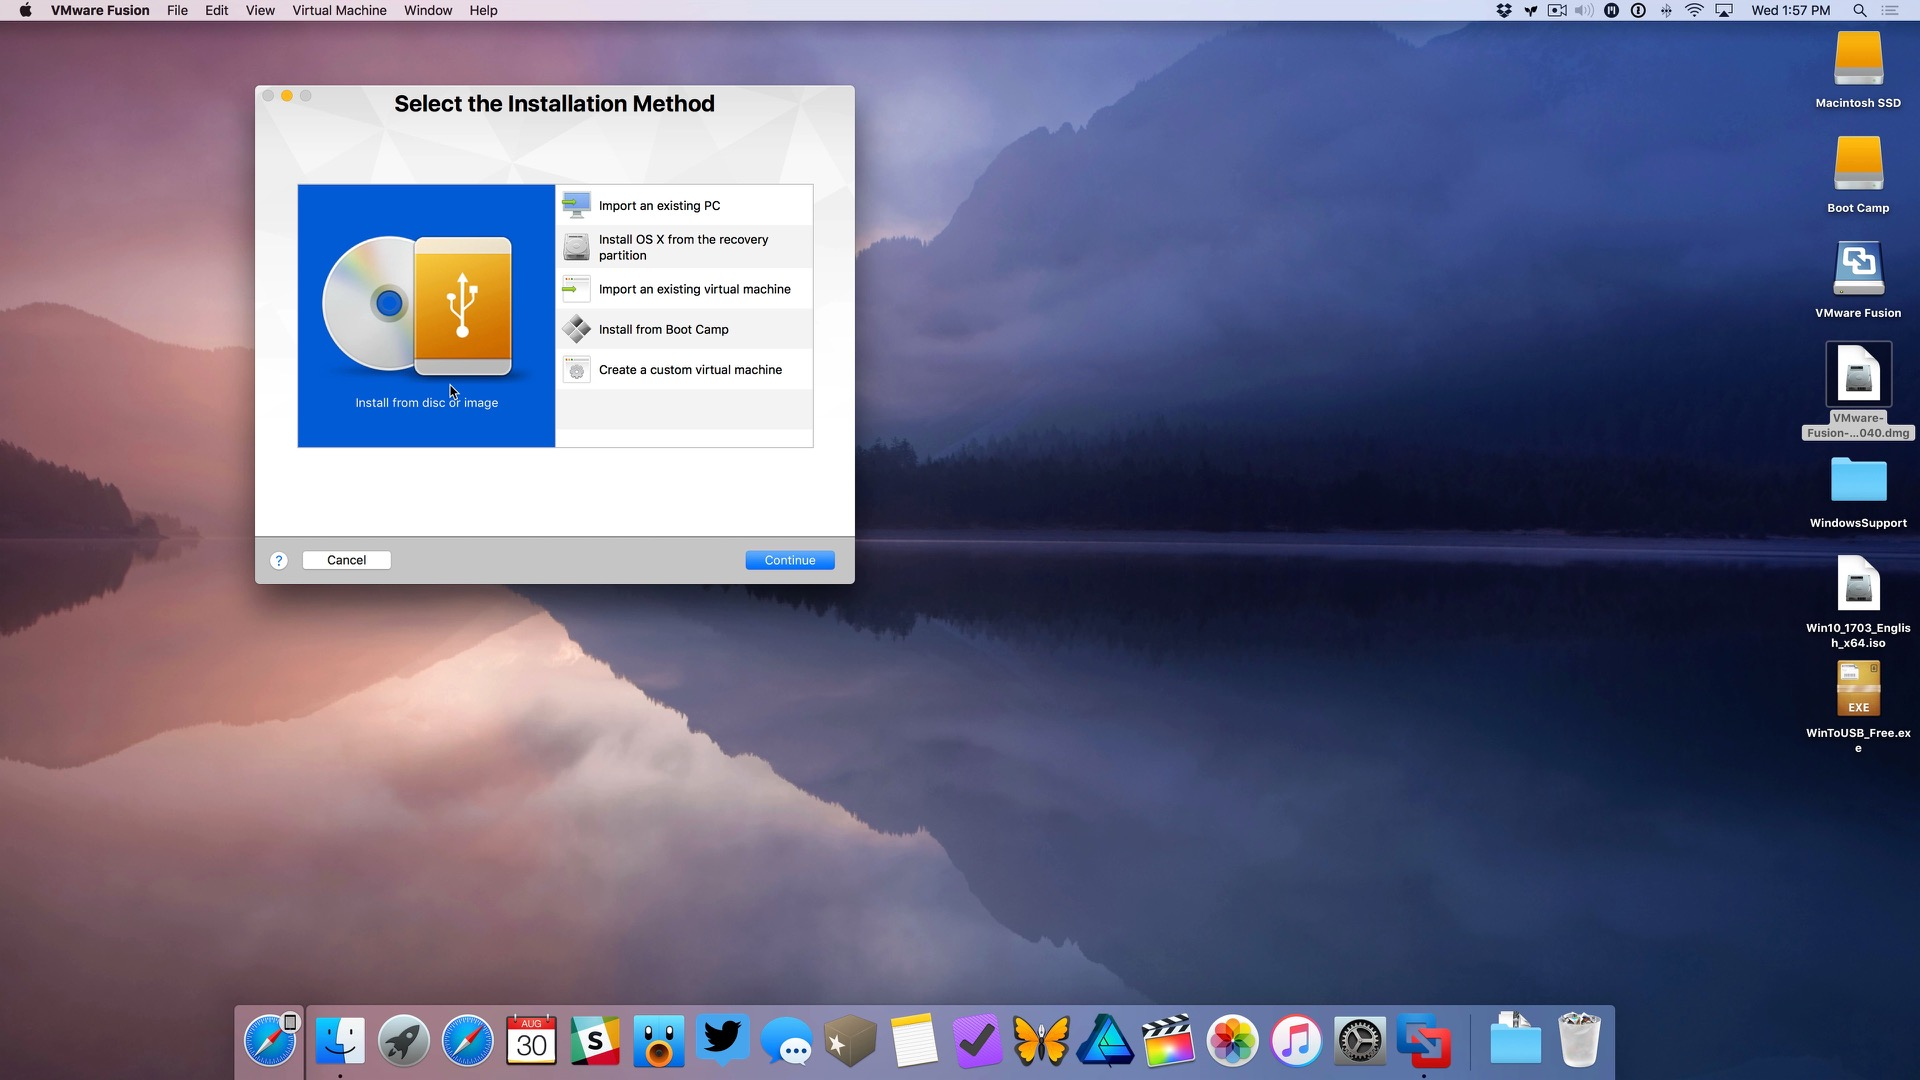 How to install Windows 10 on your Mac using a